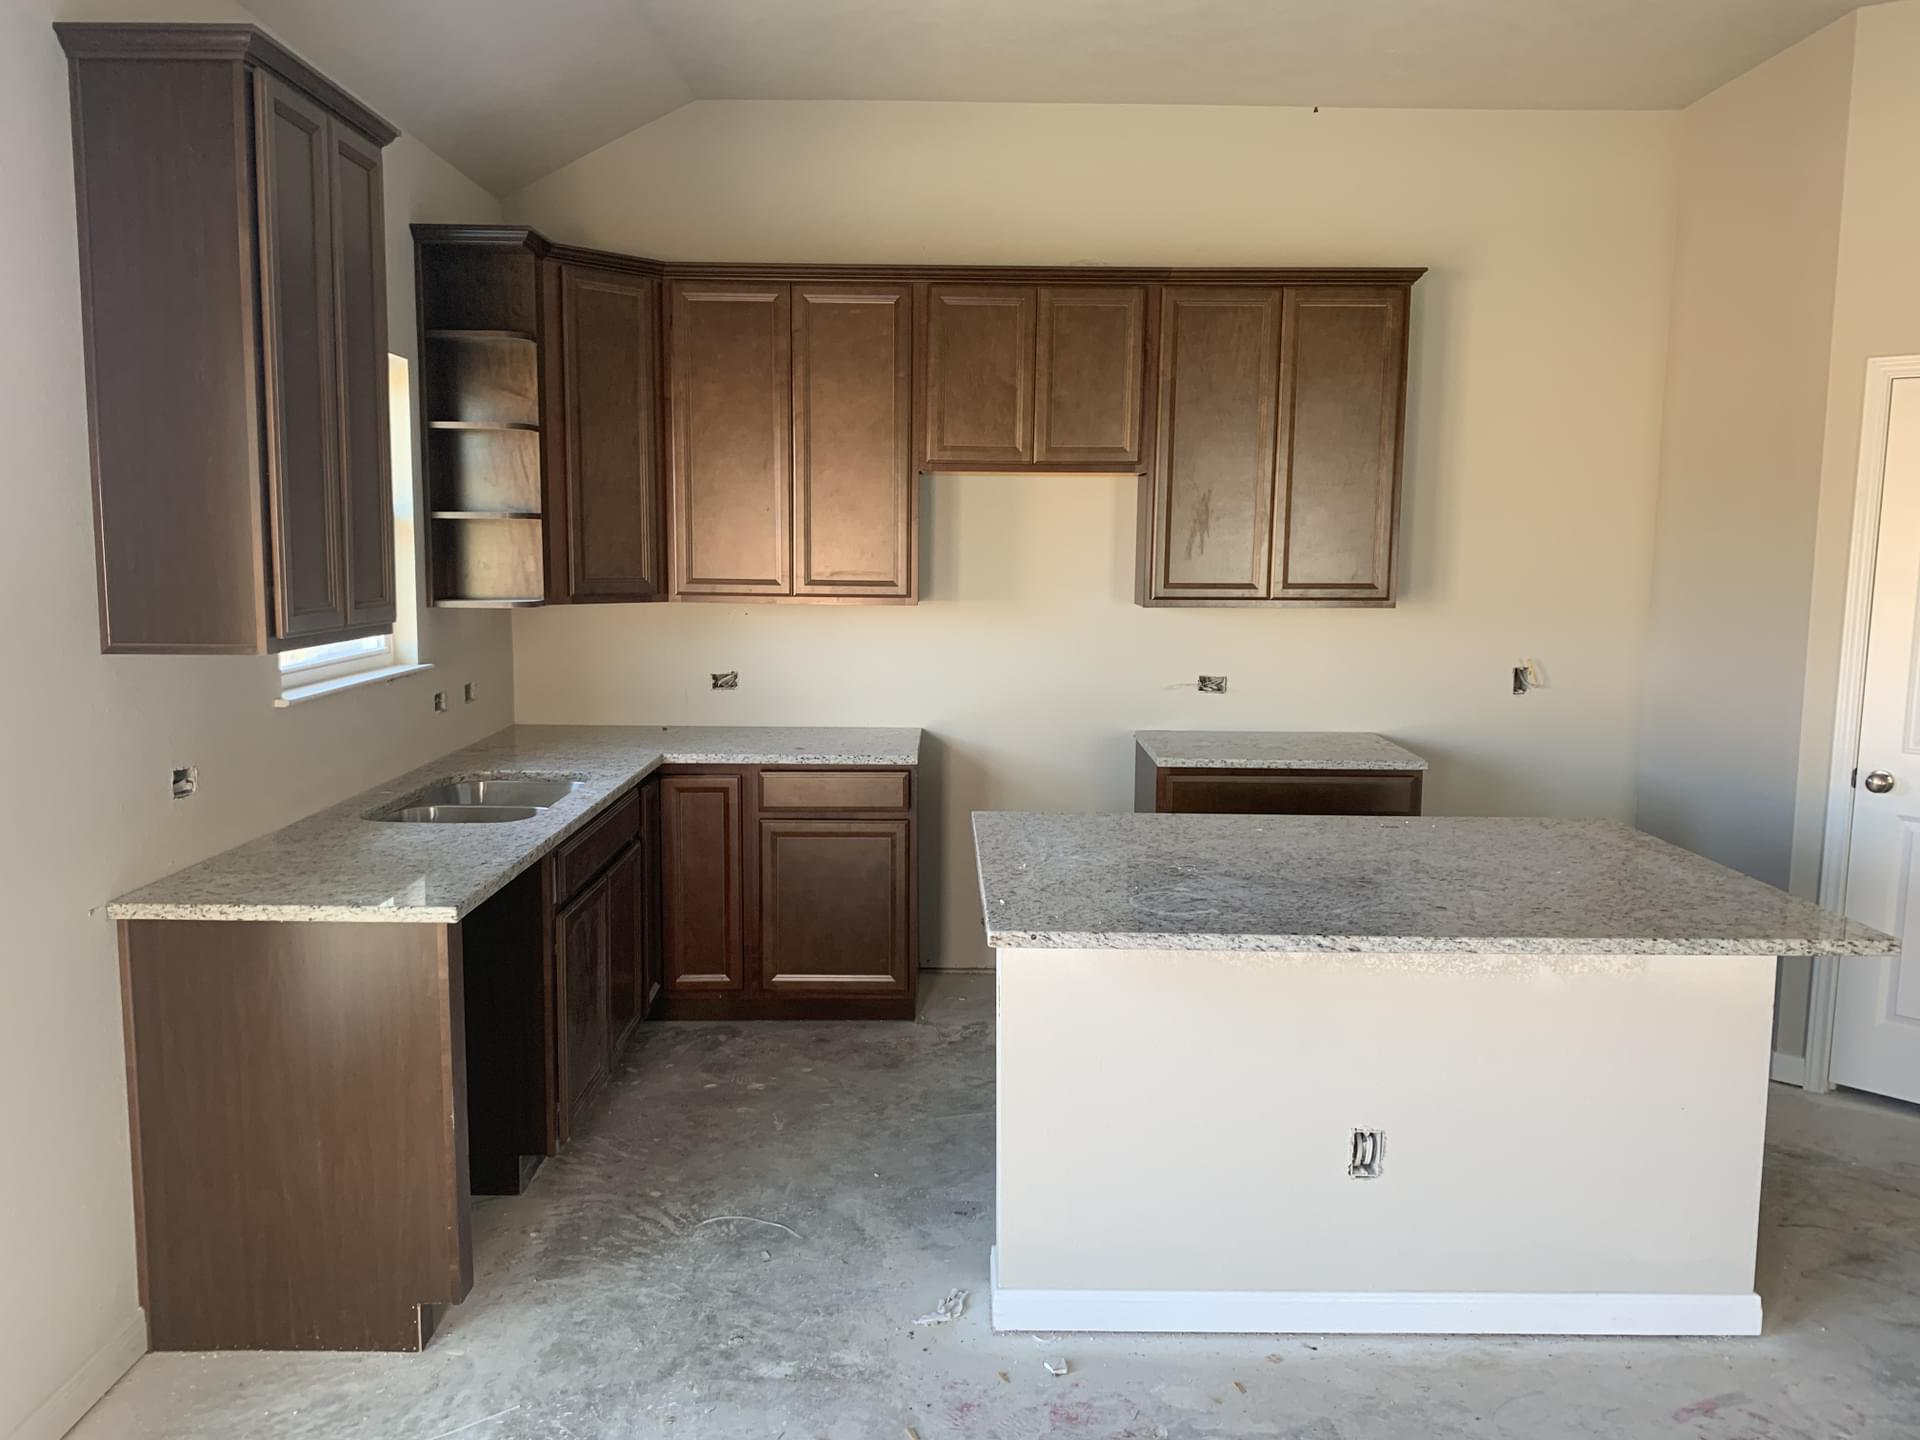 3br New Home in Caldwell, TX